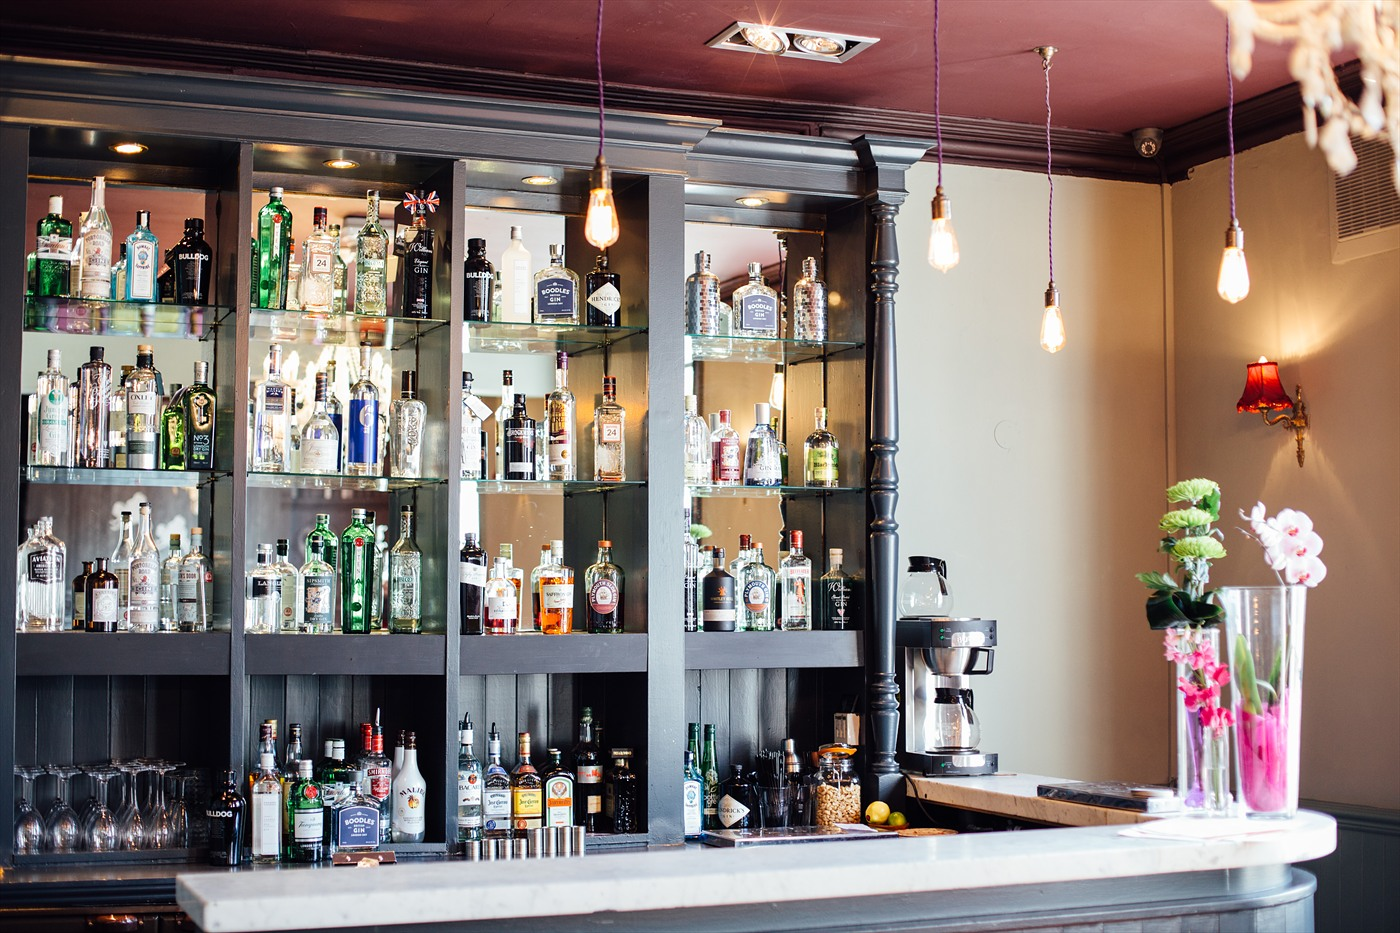 We're opening up our beautiful Gin Bar for all you lovelies to come have a cheeky drink or two!